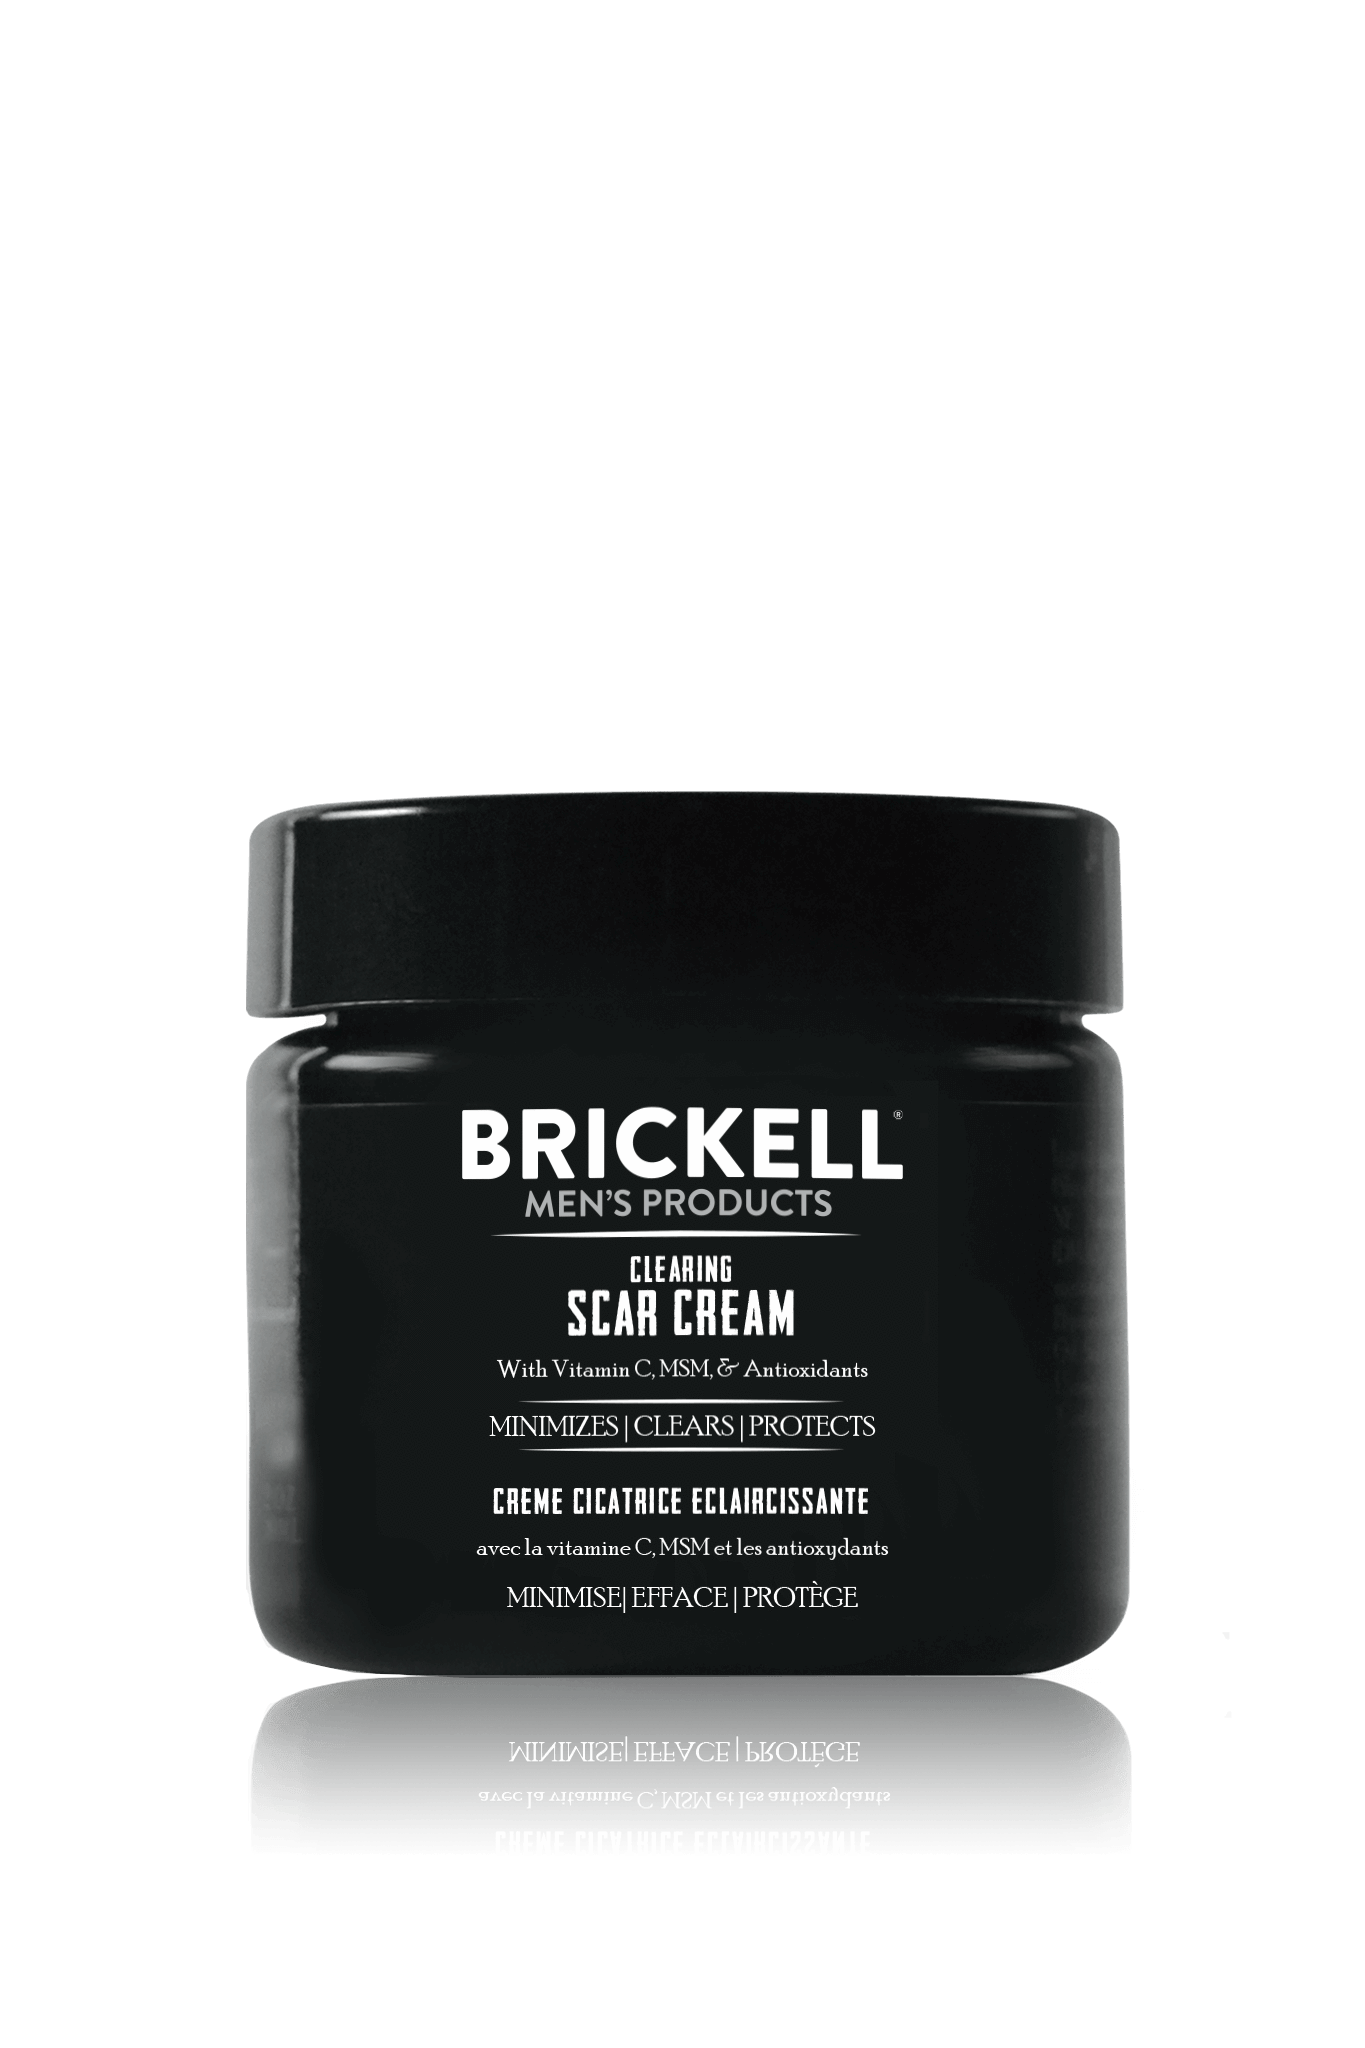 Best Natural Clearing Scar Cream For Men Brickell Men S Products